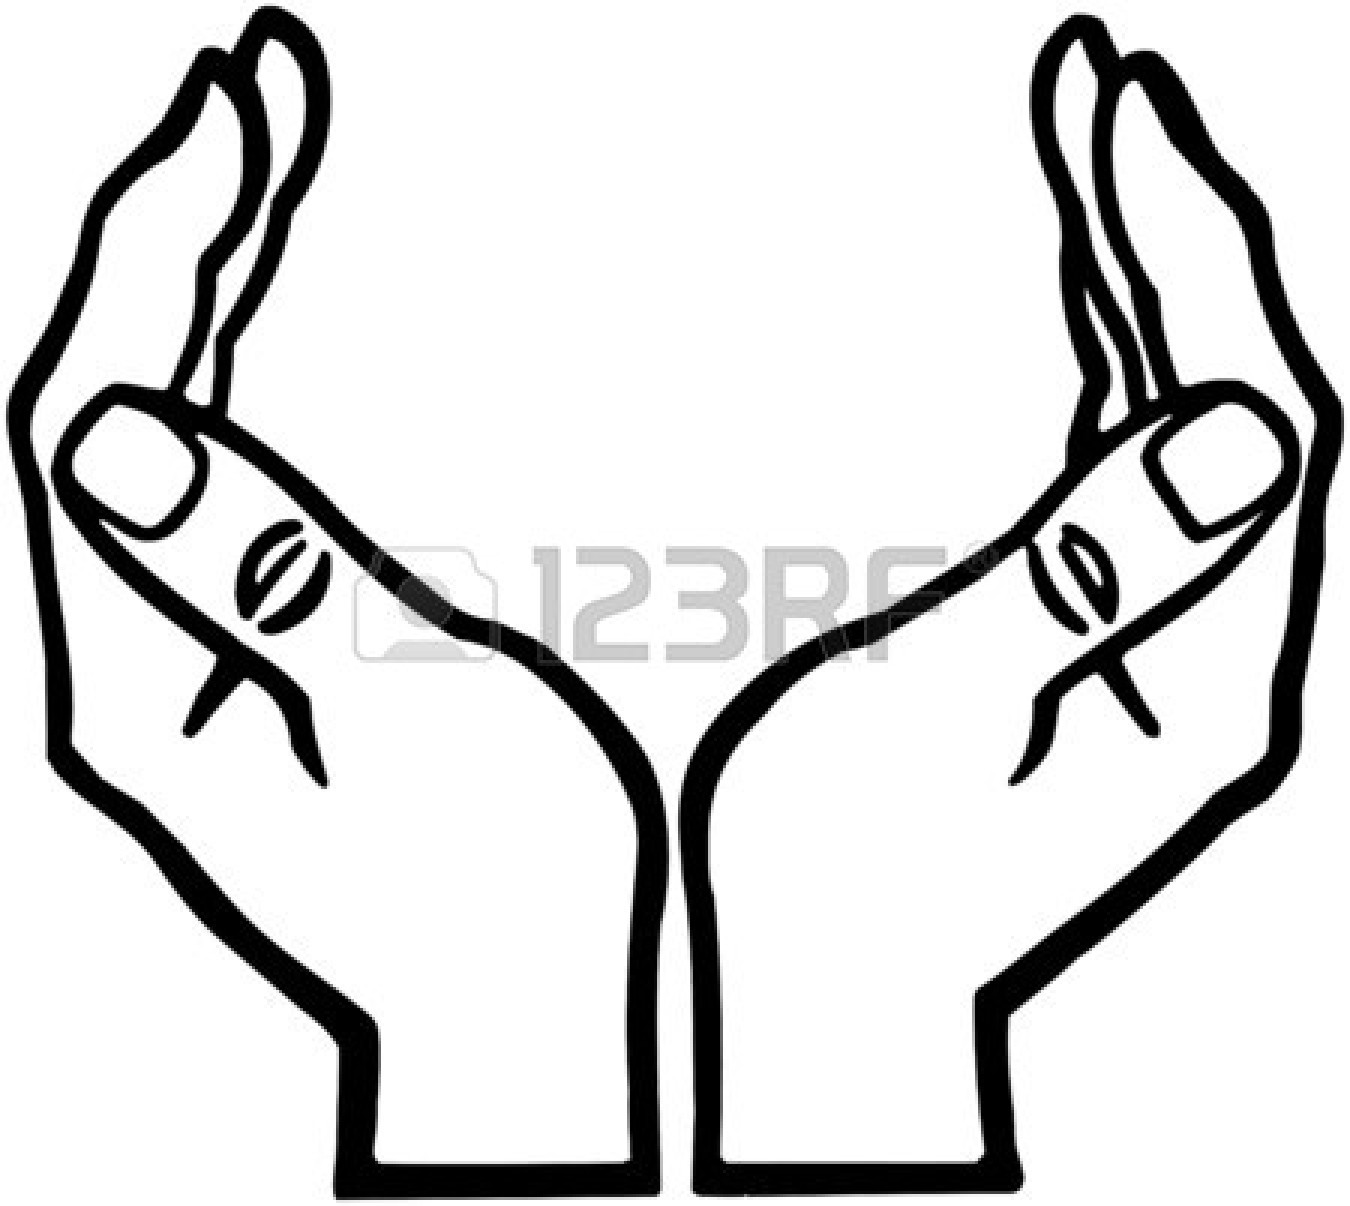 Clipart open hand clipart black and white Open Hands Clipart | Free download best Open Hands Clipart on ... clipart black and white